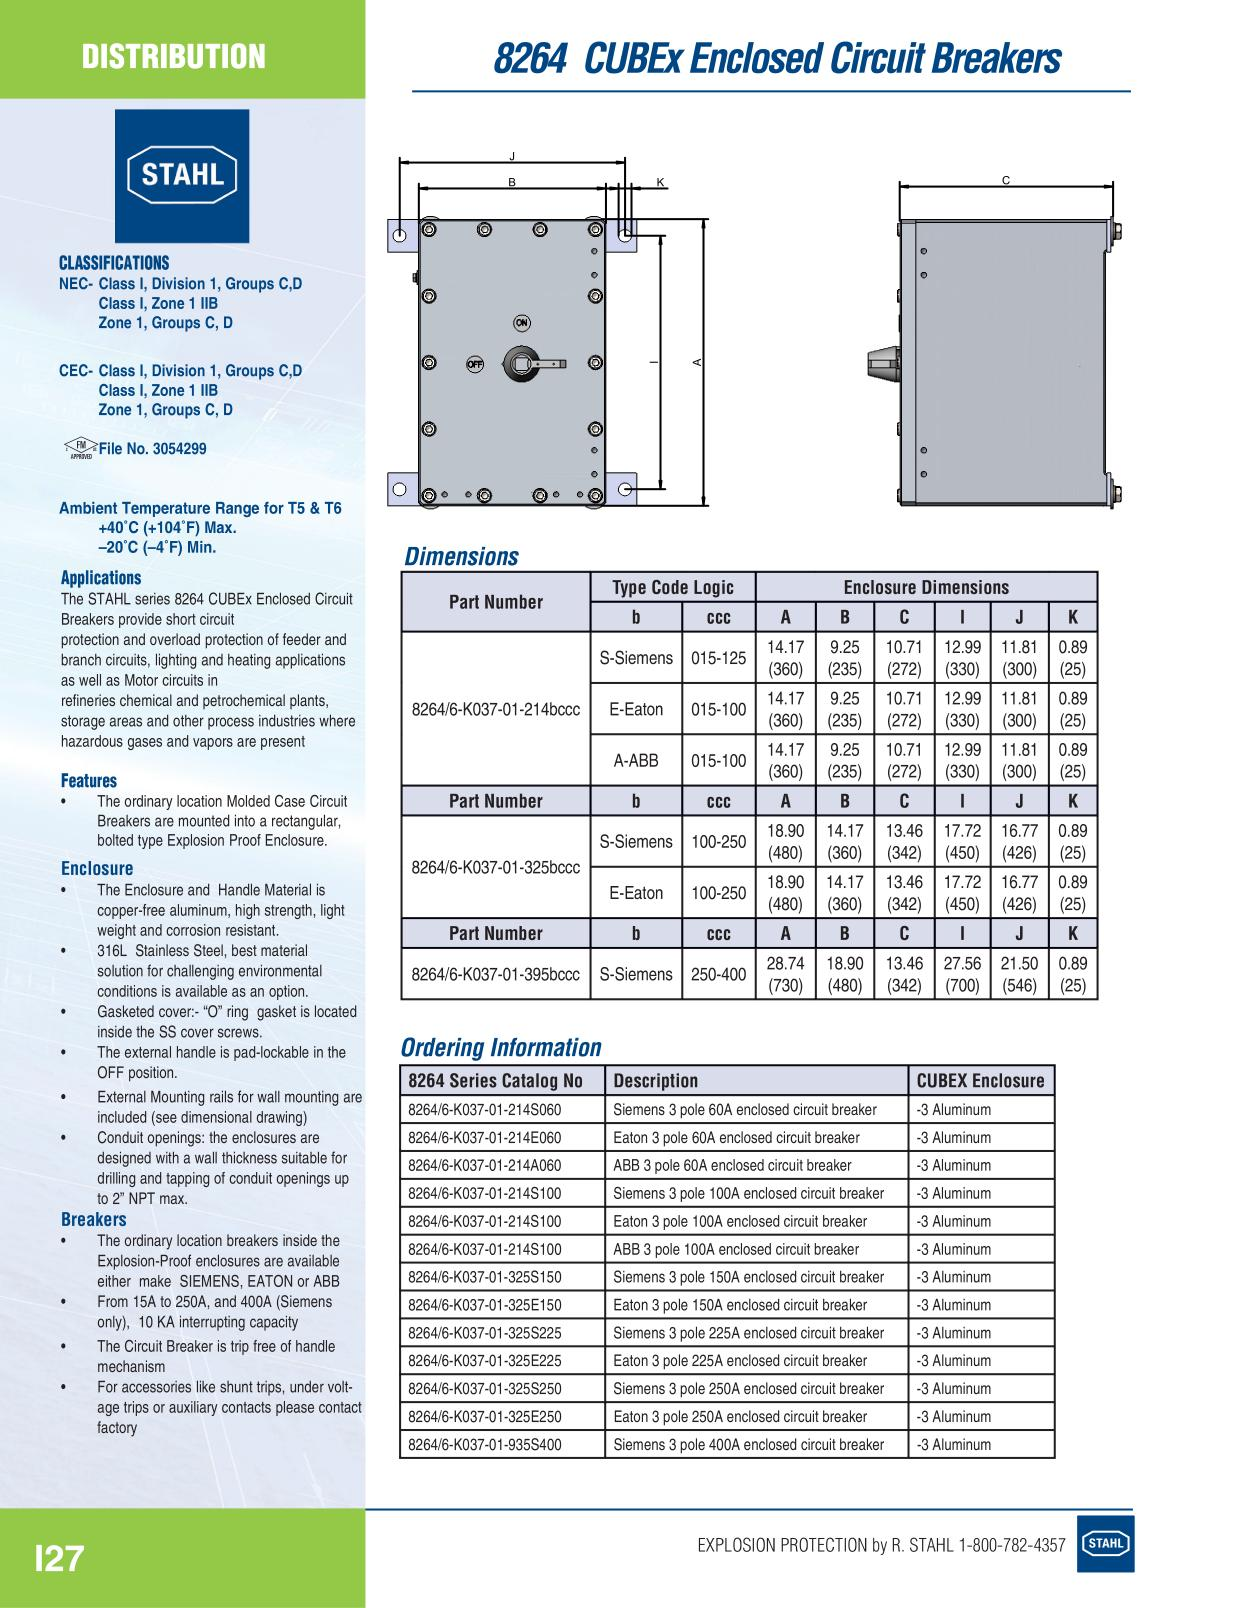 R Stahl Electrical Catalog 9016 - Page I27 Distribution